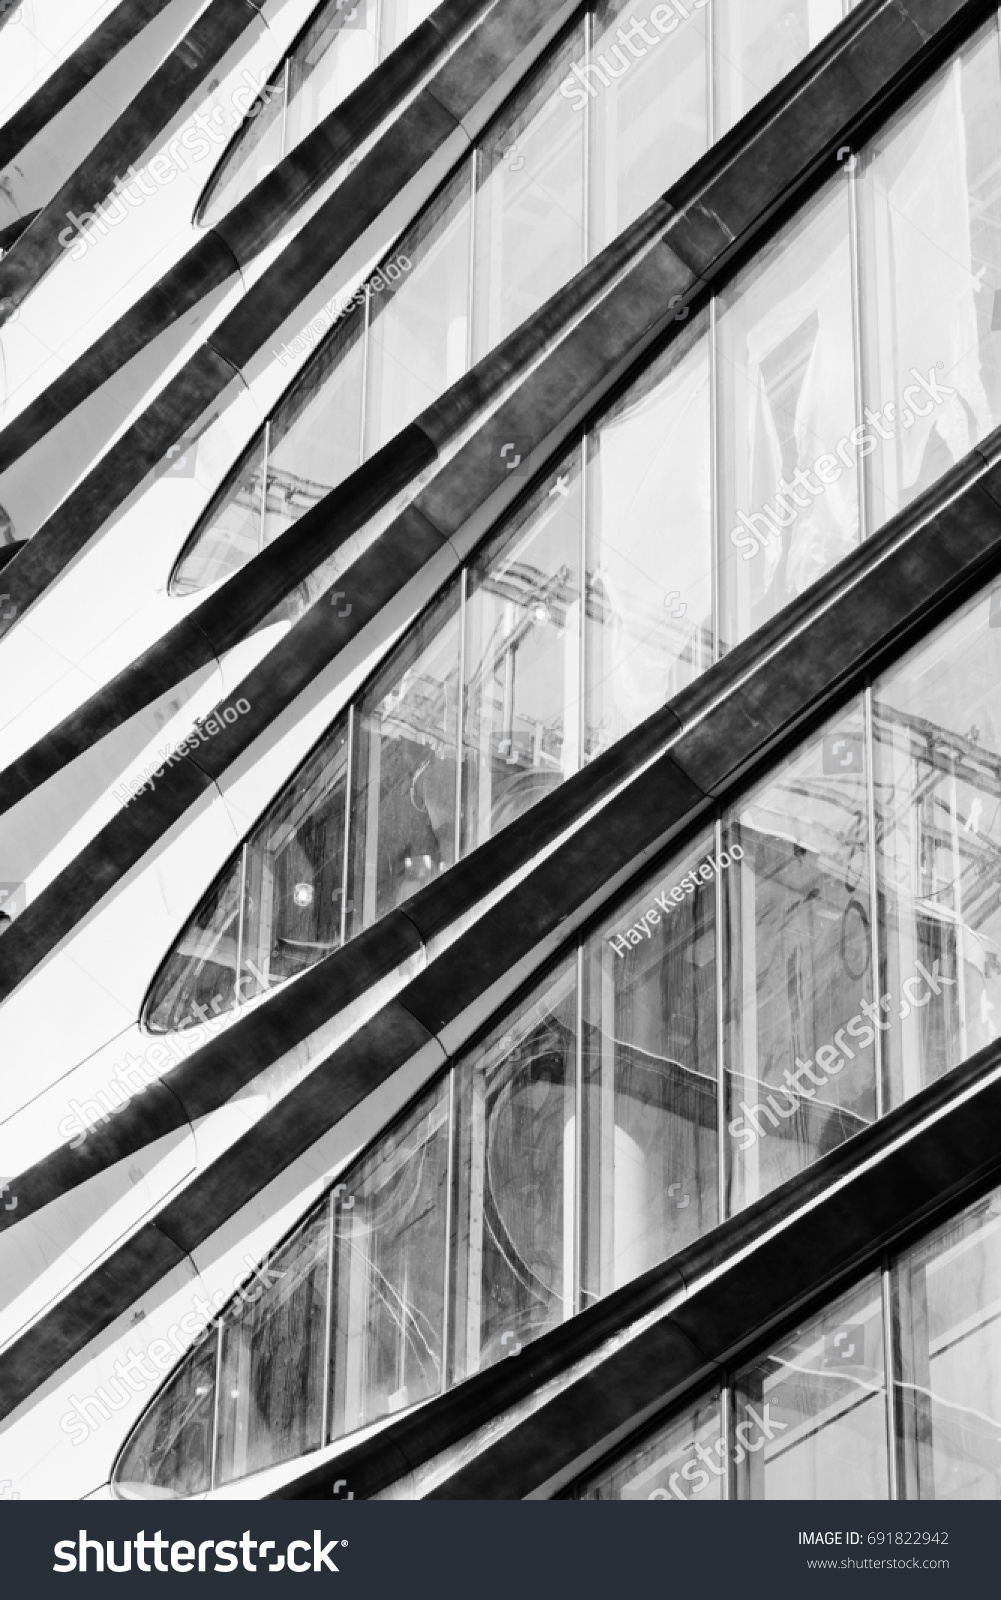 Design details of modern and classic architecture in manhattan zaha hadid